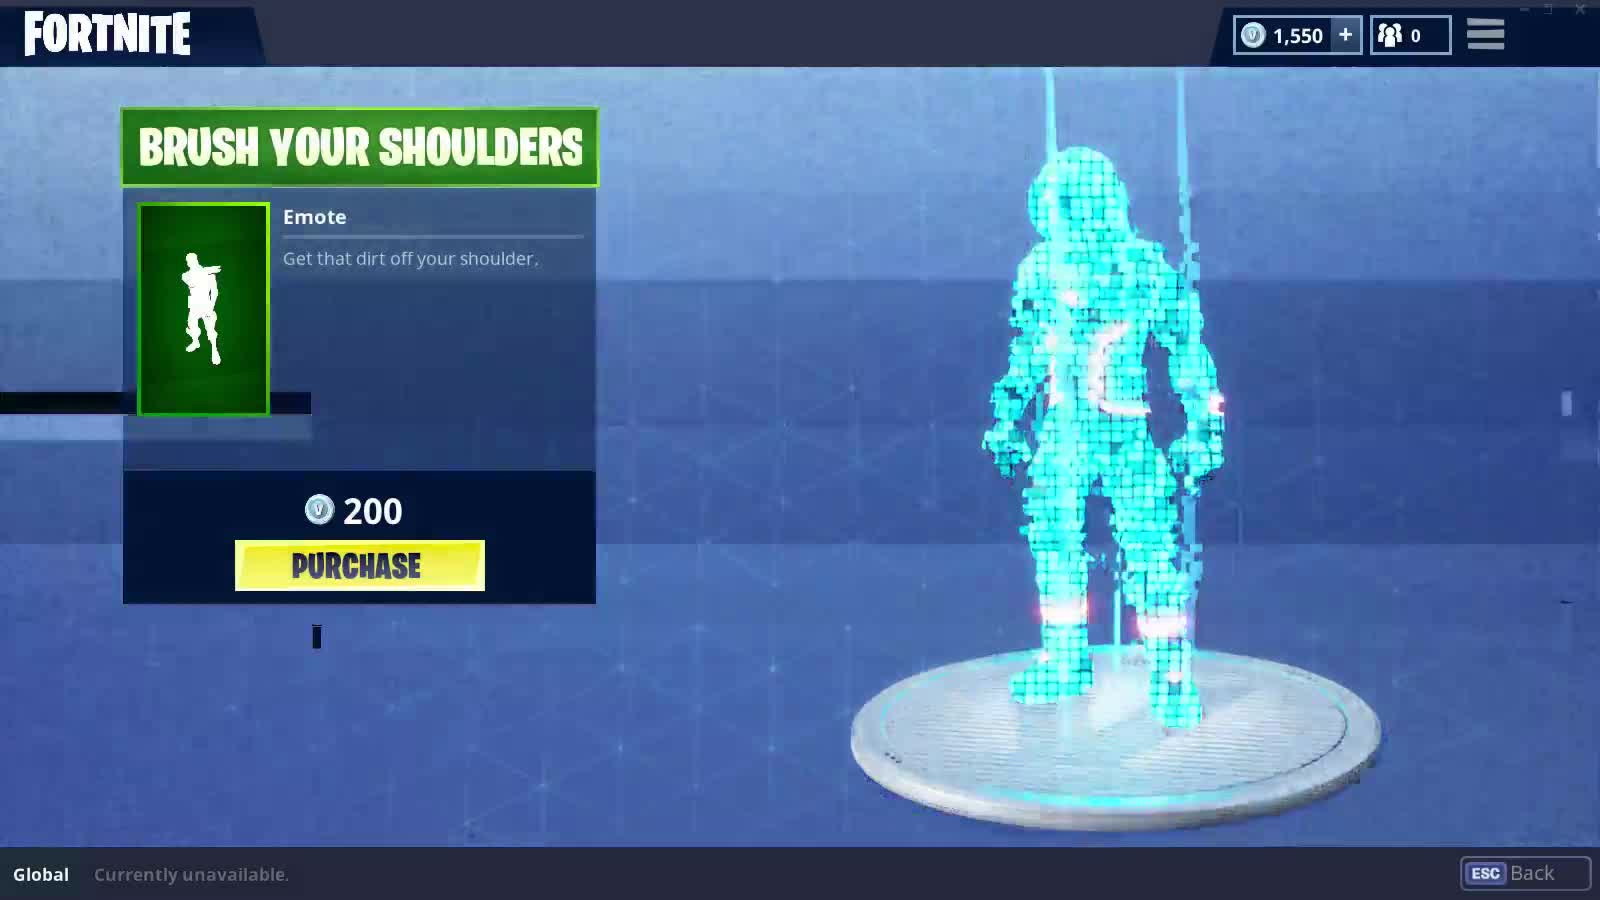 brush your shoulders gif by soullessfire find make share gfycat gifs - brush your shoulders fortnite emote